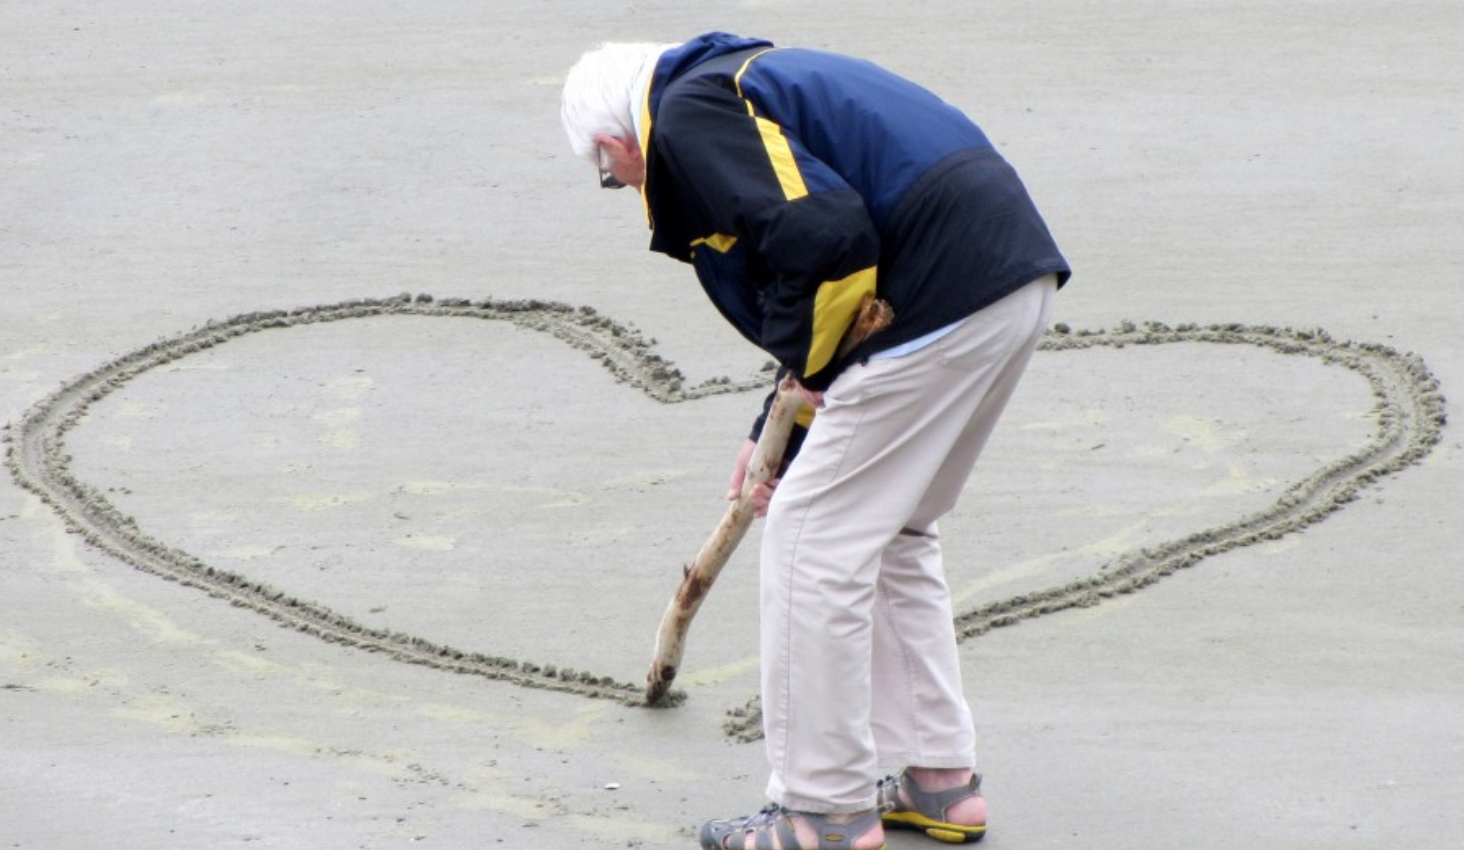 White-haired man on a beach drawing a heart in the sand